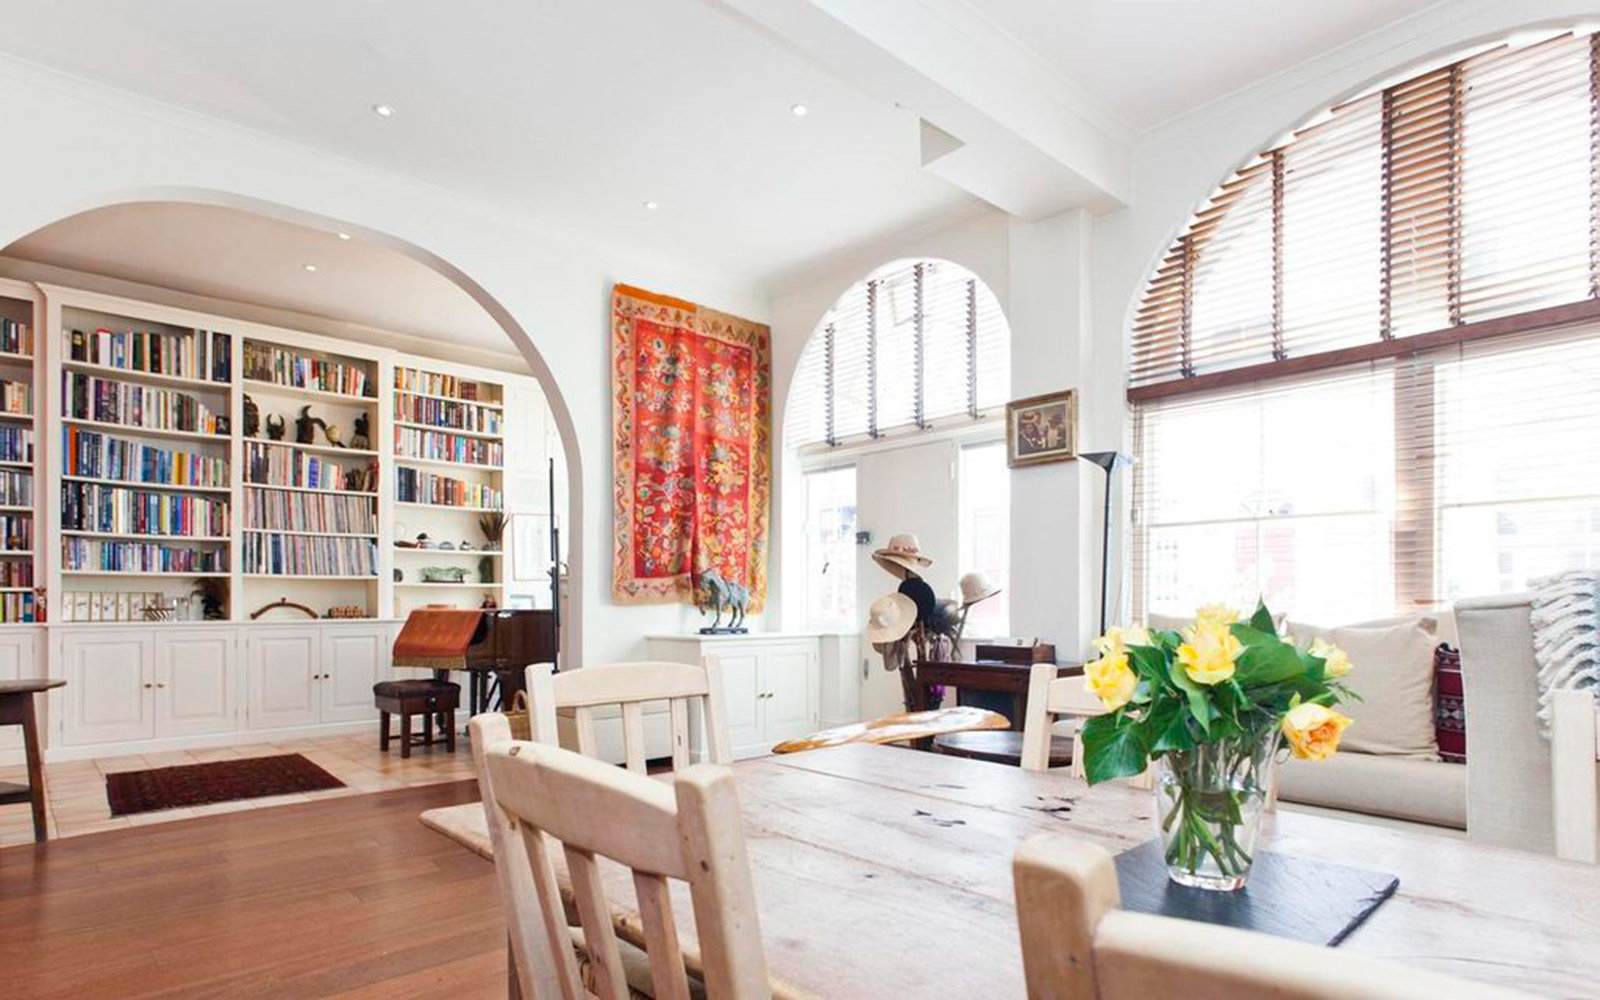 Dining Room at Madonna's Former Flat in London